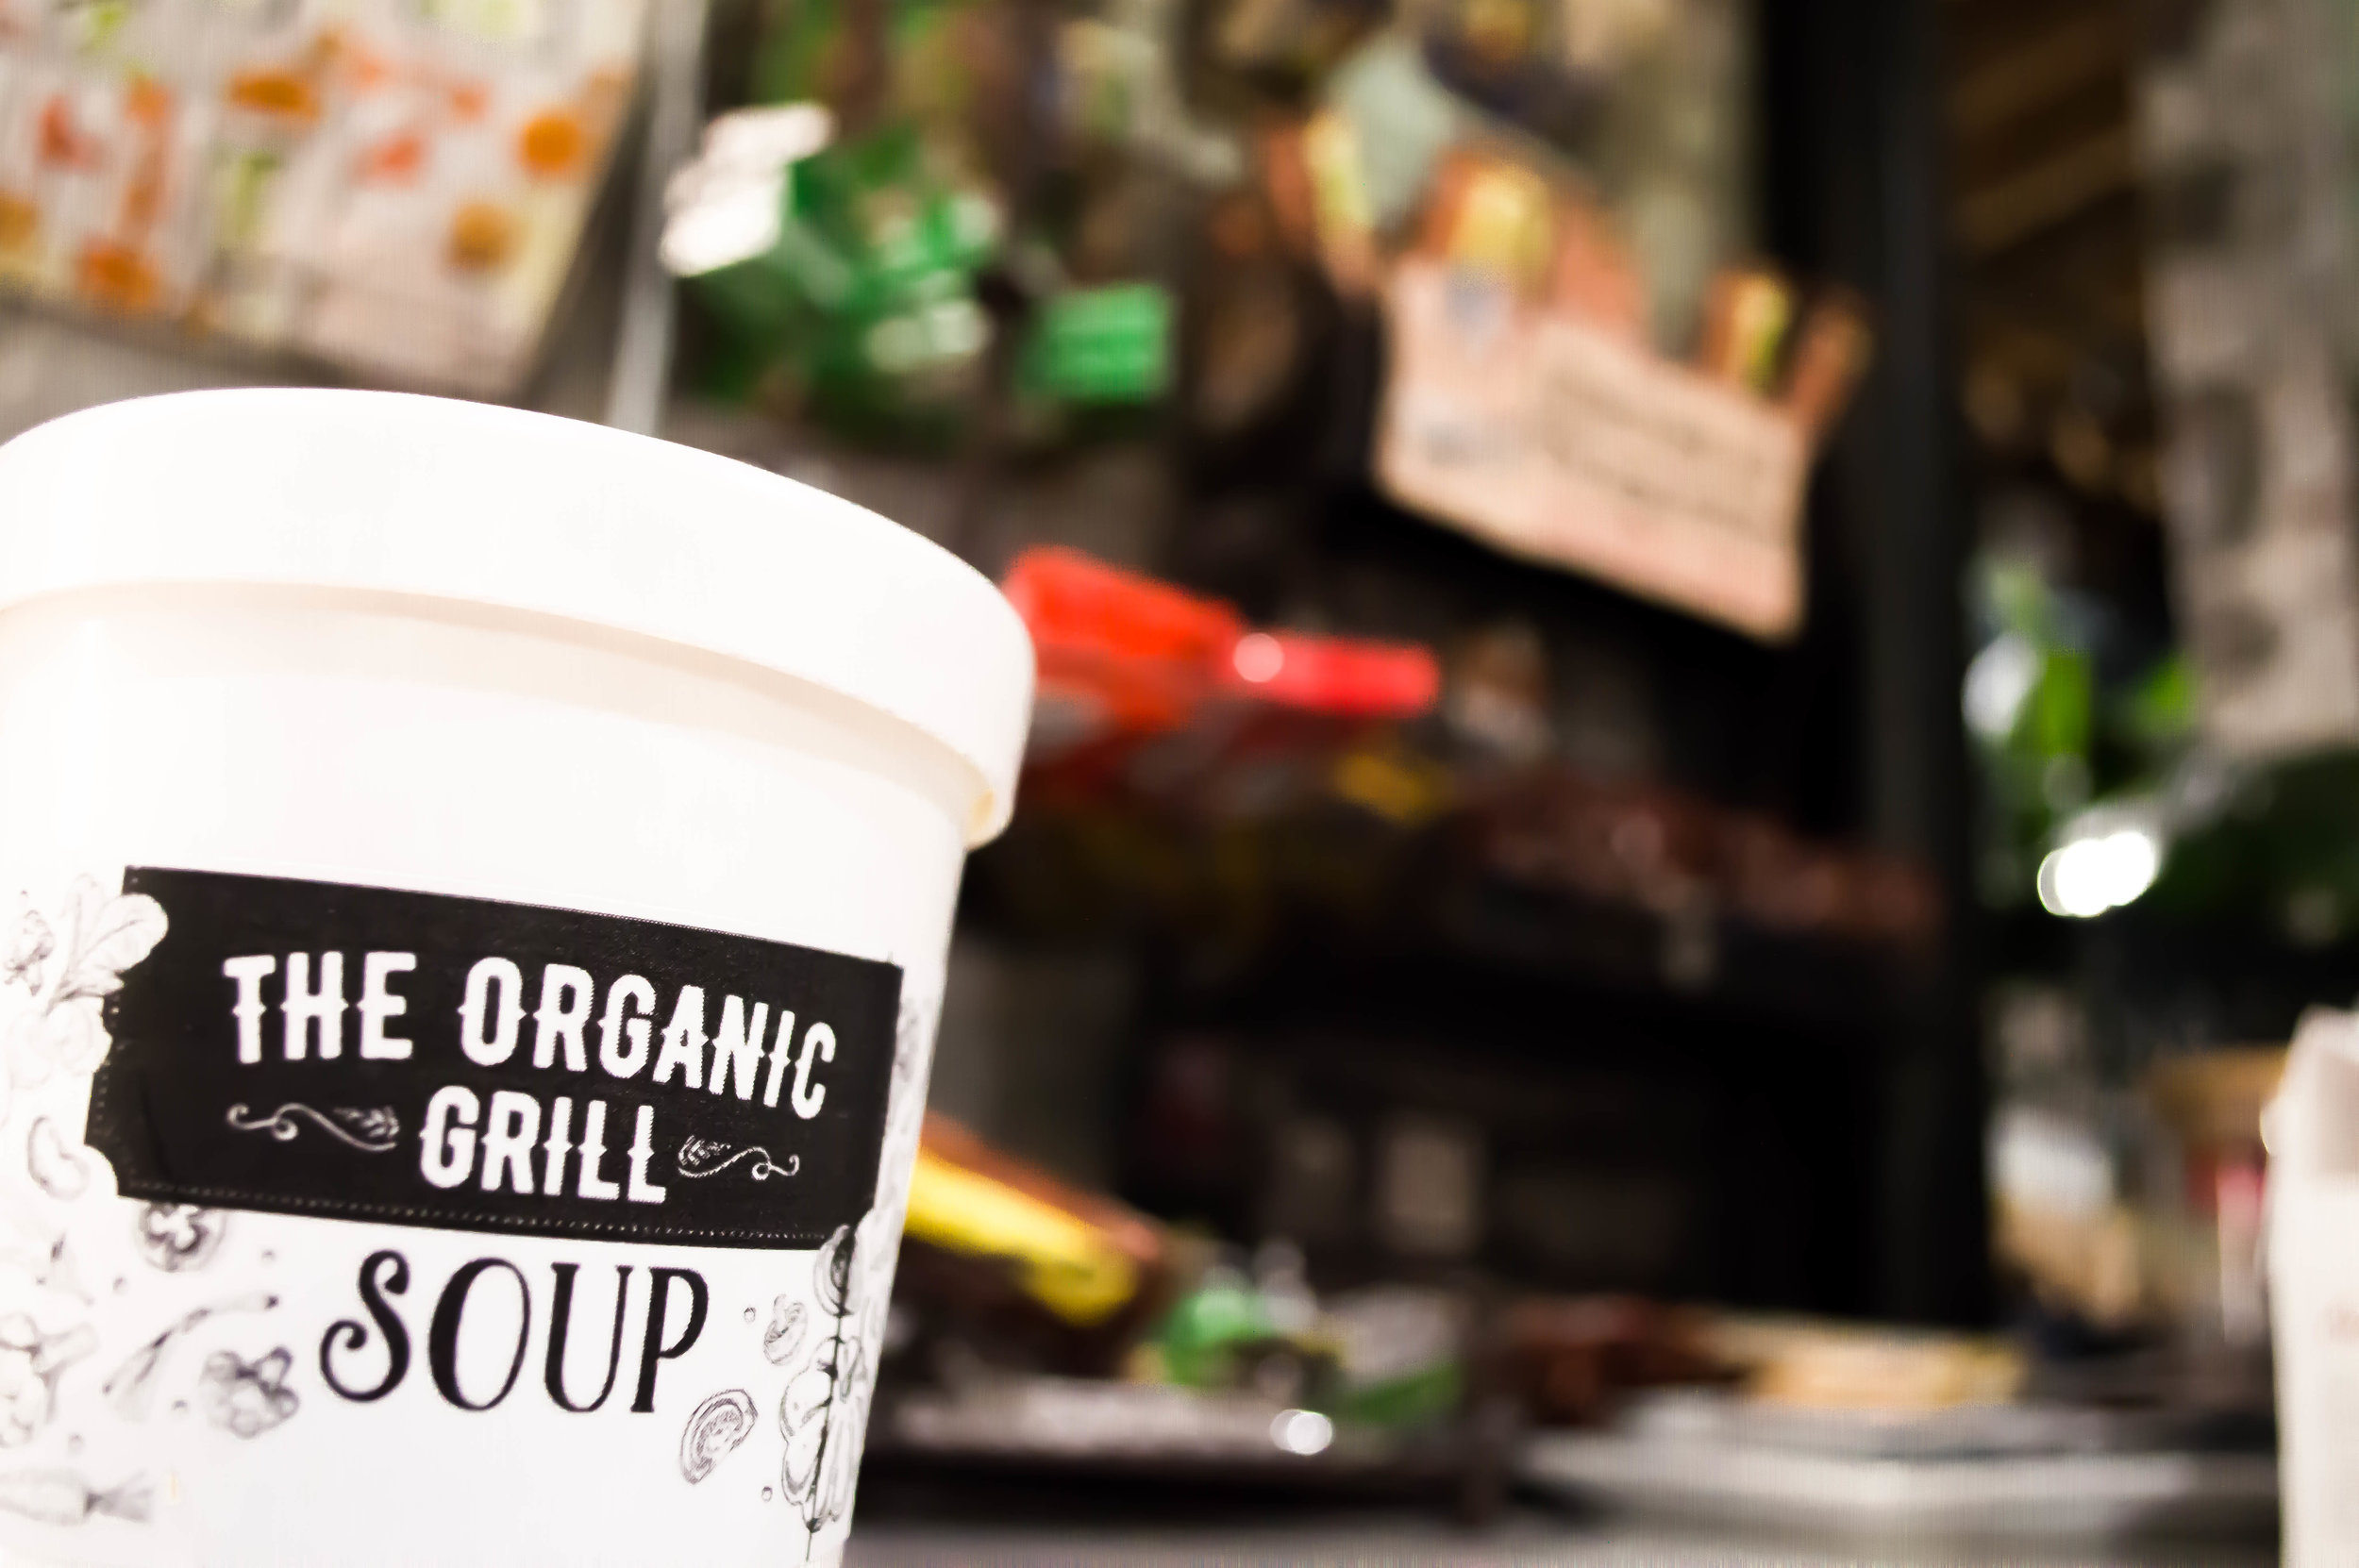 Soup from the Organic Grill